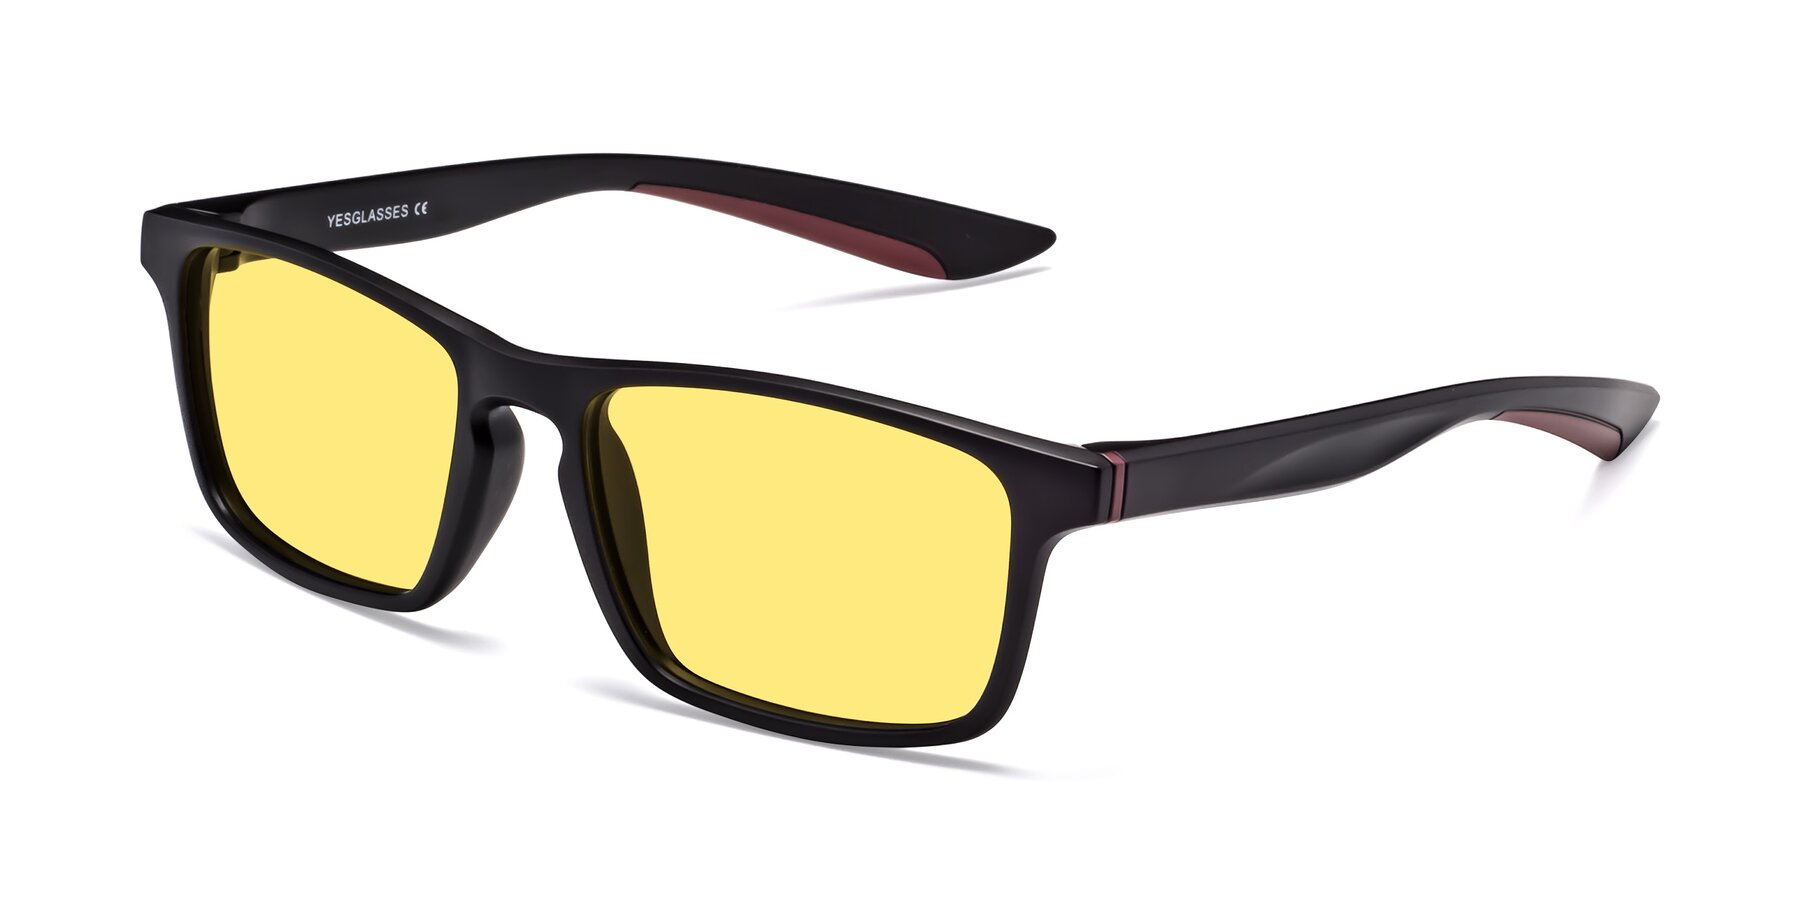 Angle of Passion in Matte Black-Wine with Medium Yellow Tinted Lenses